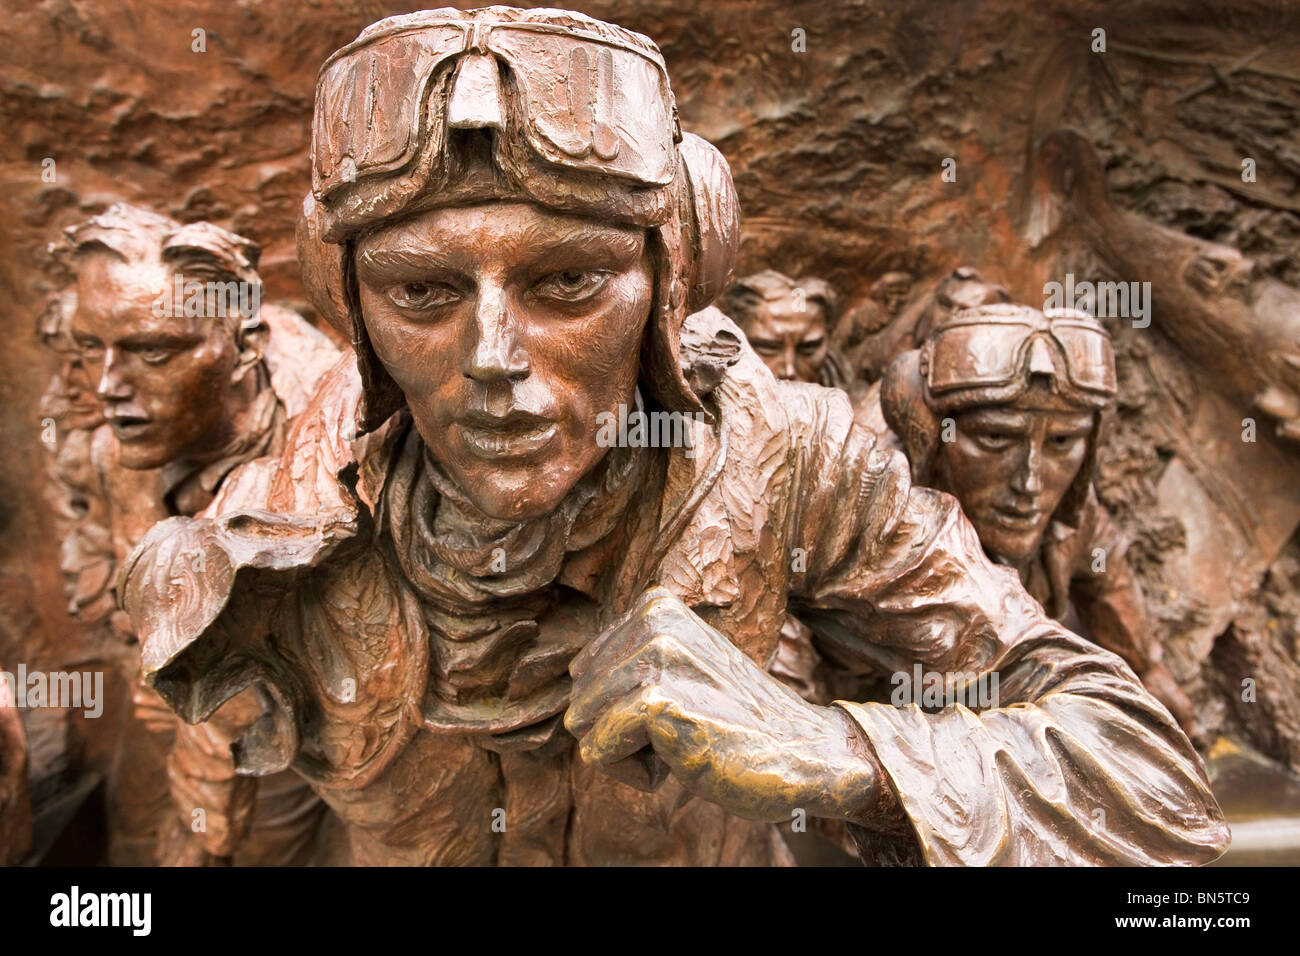 RAF Pilots are depicted on the Battle of Britain Memorial at Embankment in London, England, UK. - Stock Image